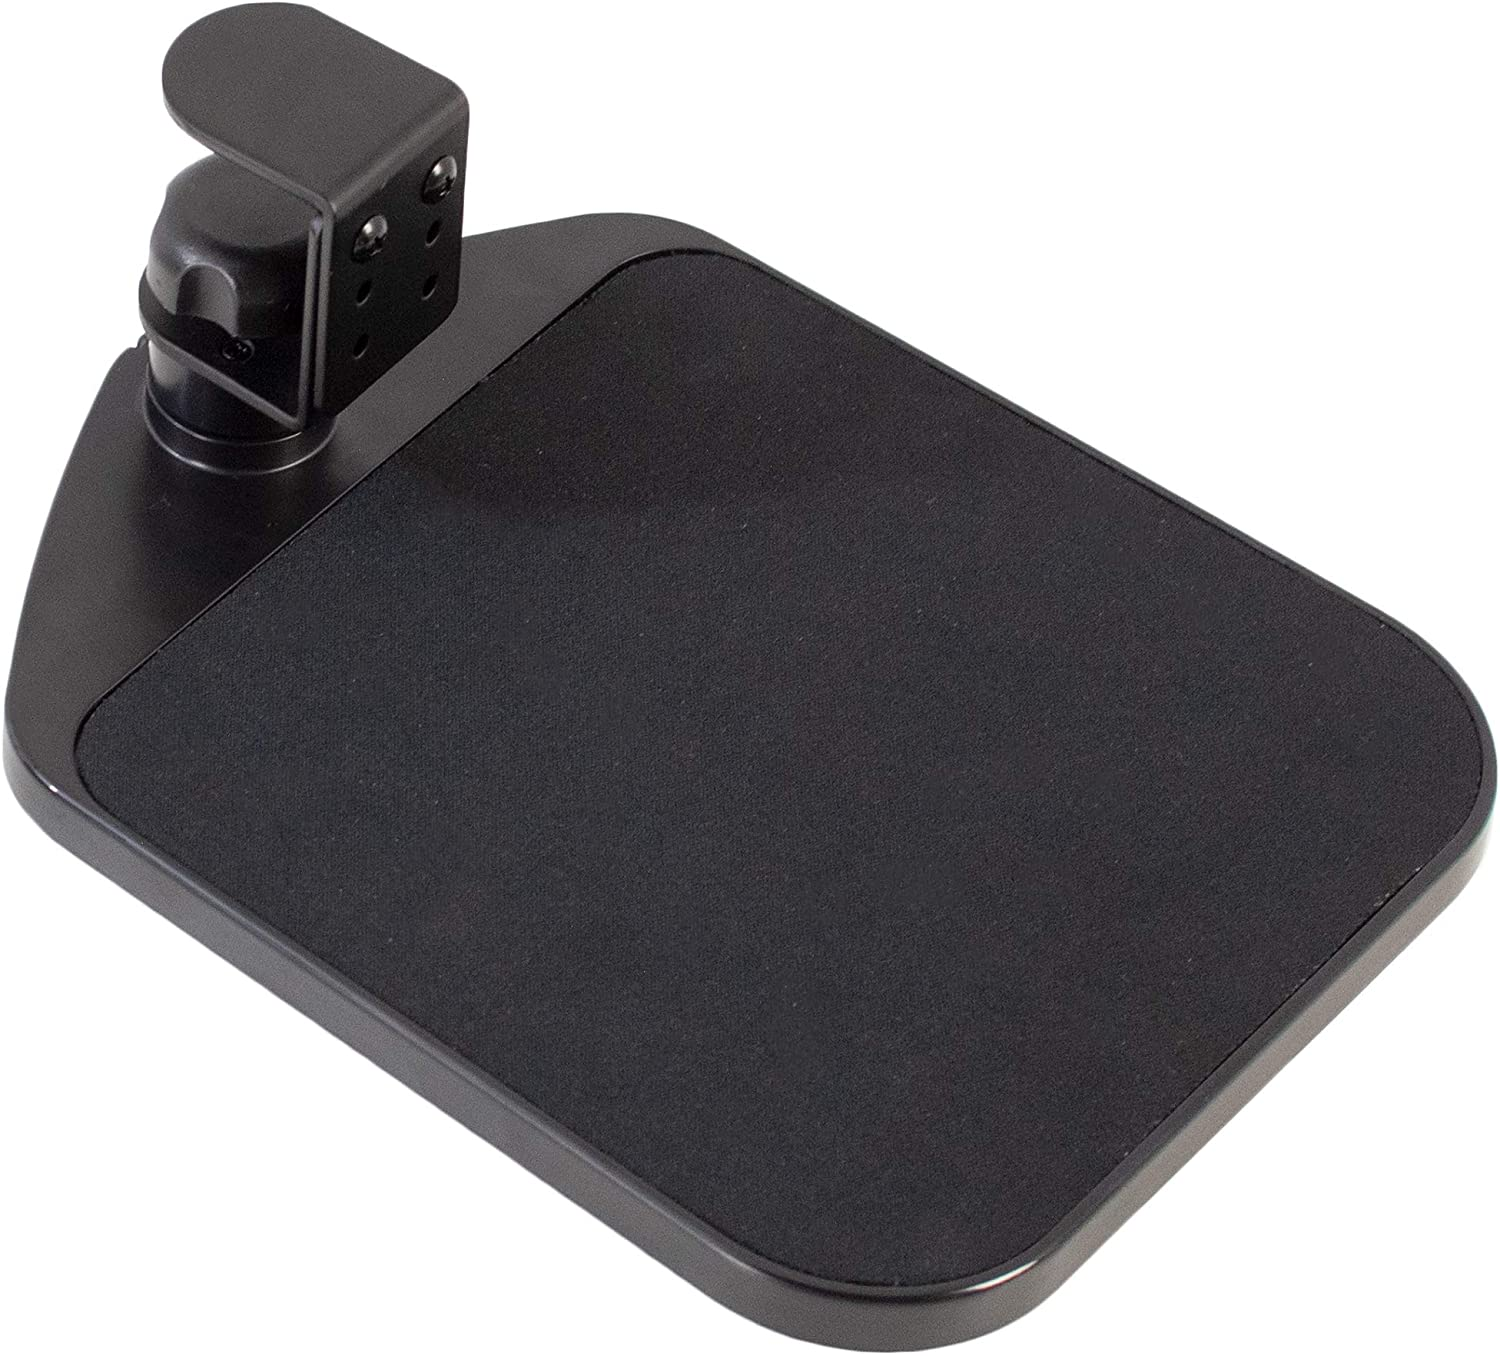 VIVO Black Desk Clamp Adjustable Computer Mouse Pad and Device Holder Extended Rotating Platform Tray | Fits up to 2 inch Desktops (MOUNT-MS01A)